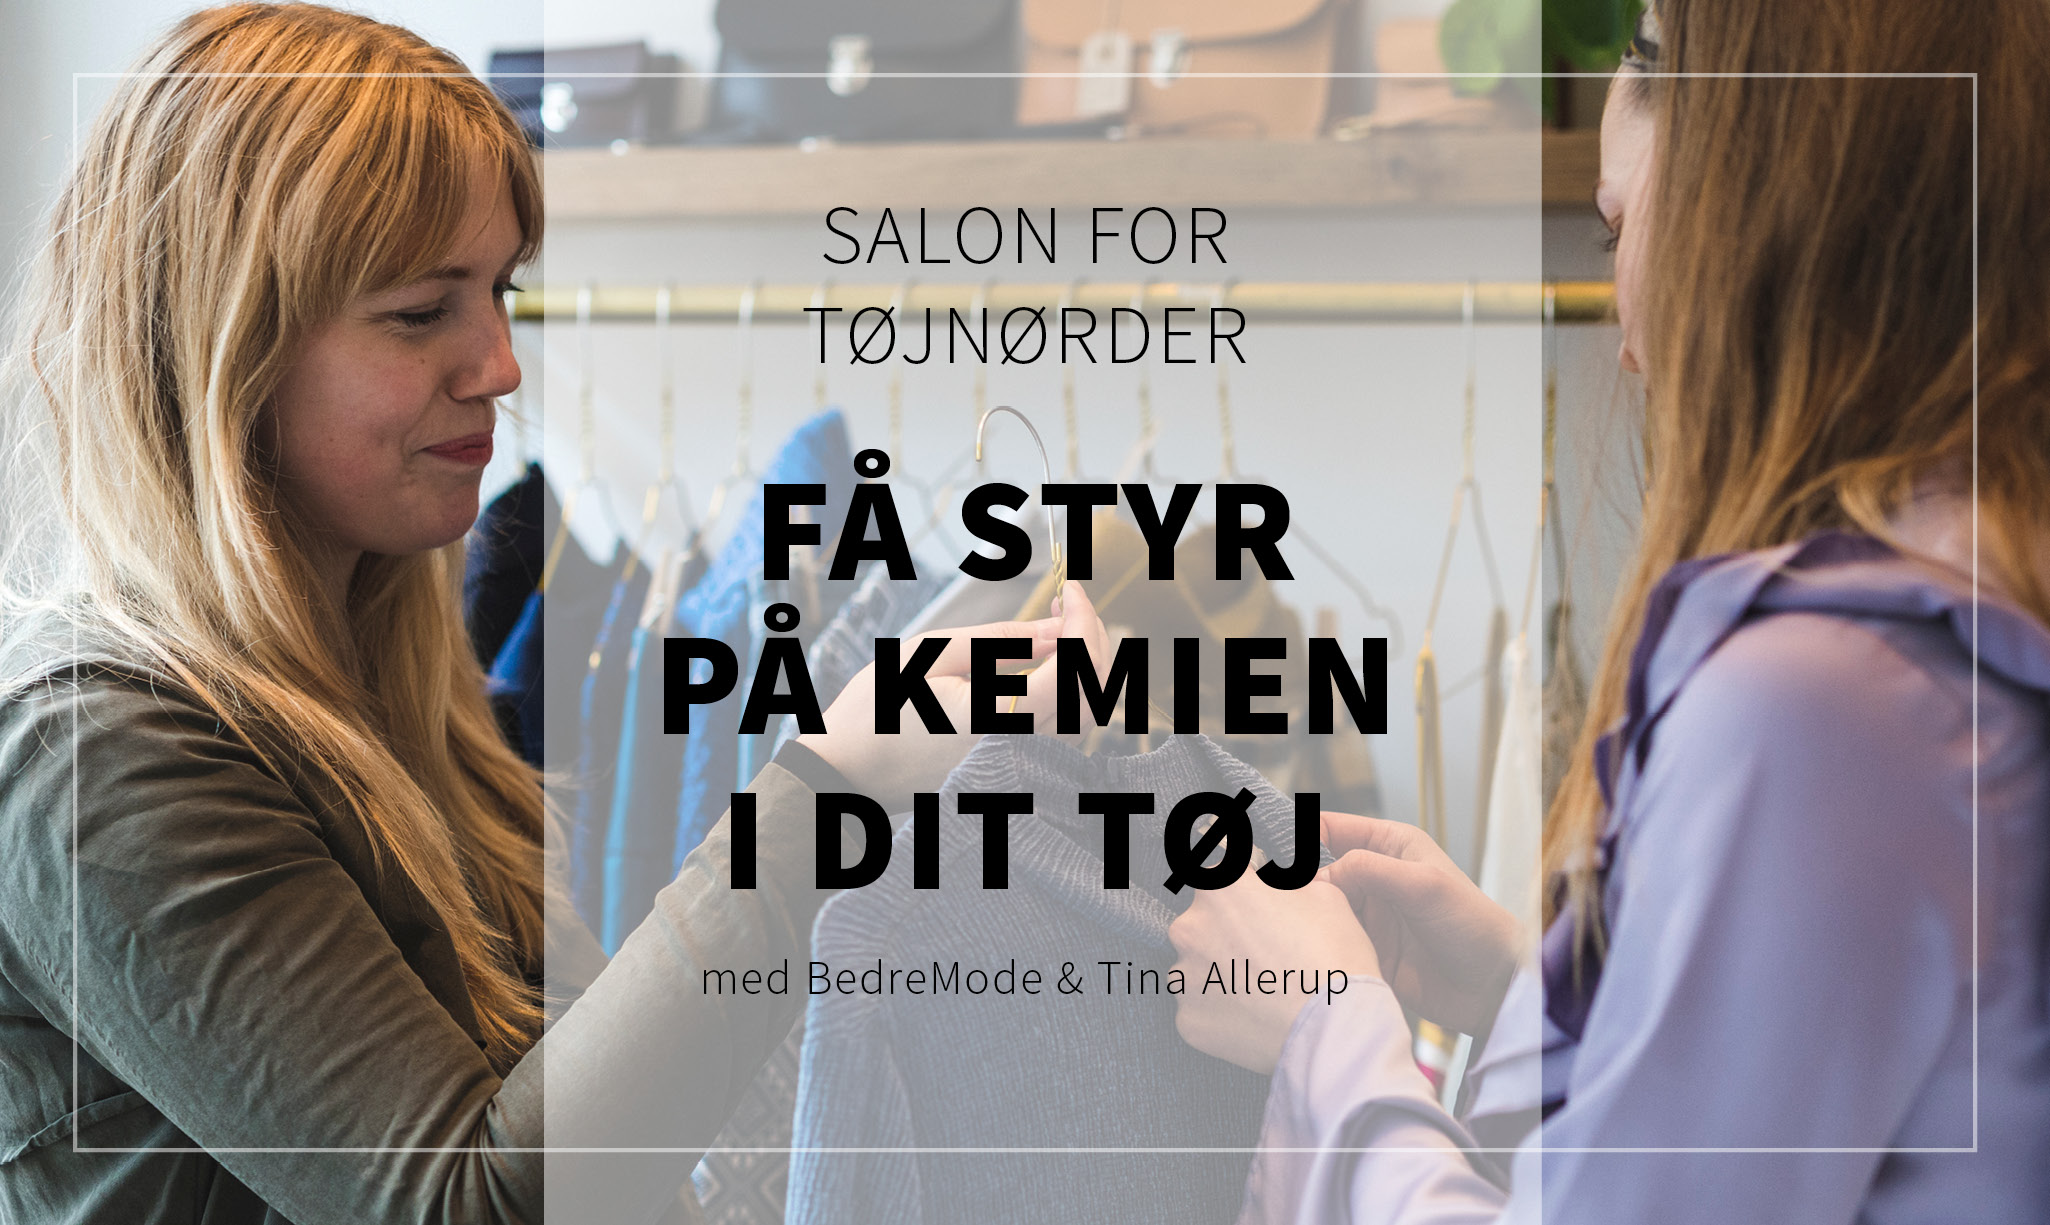 salon for tøjnørder 1